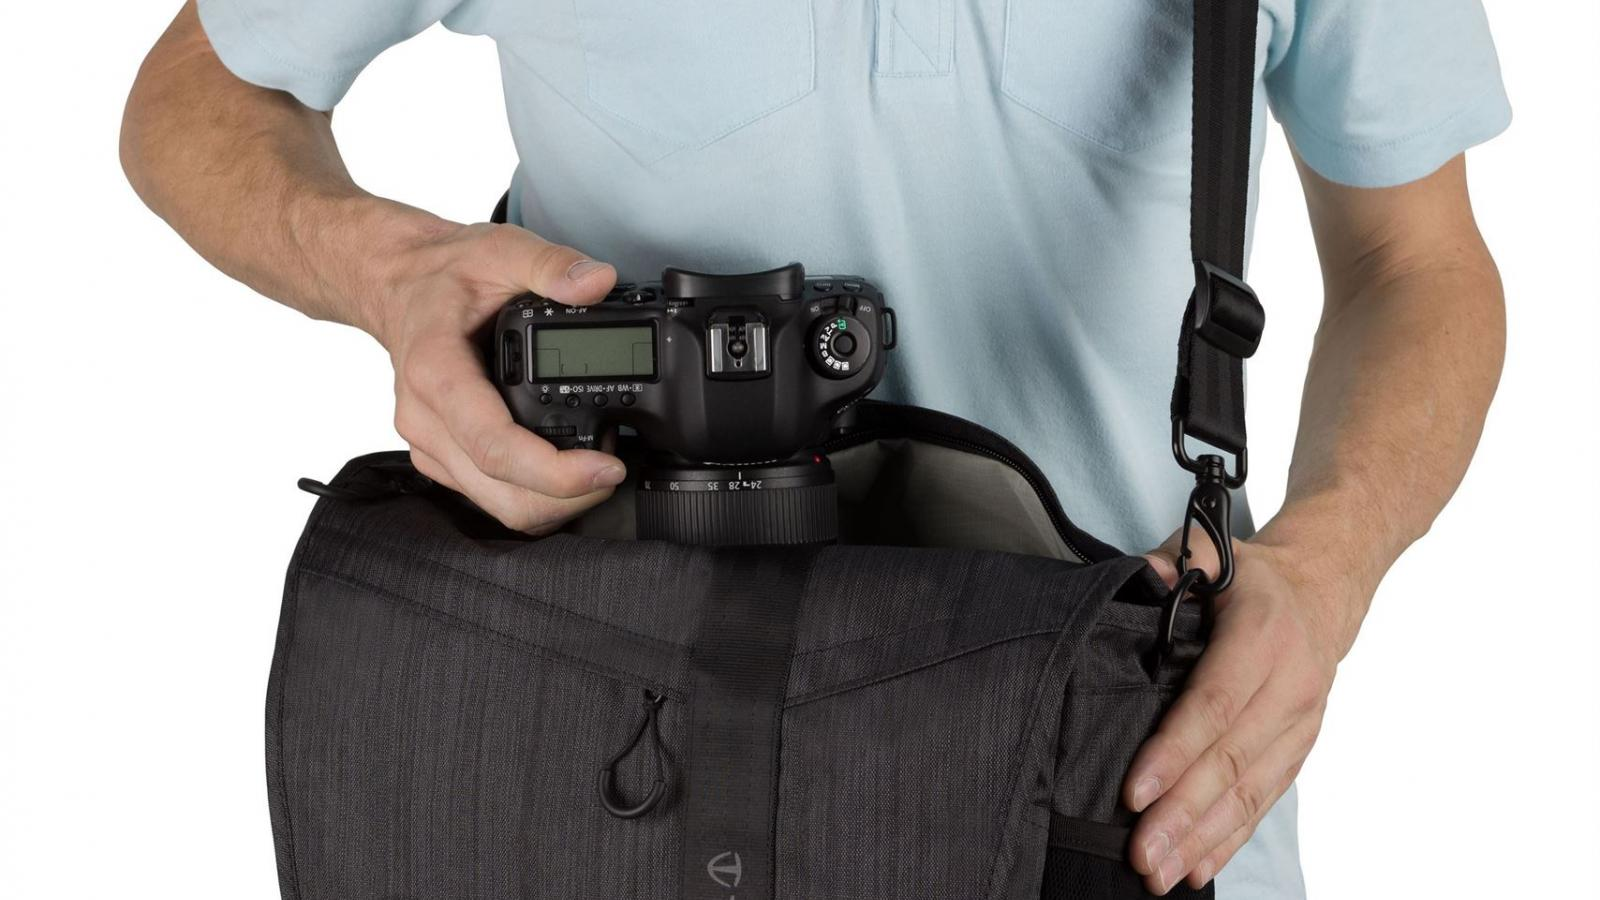 QUICK ACCESS TOP ZIPPER - Allows secure exchange of cameras and lenses without opening the front flap.